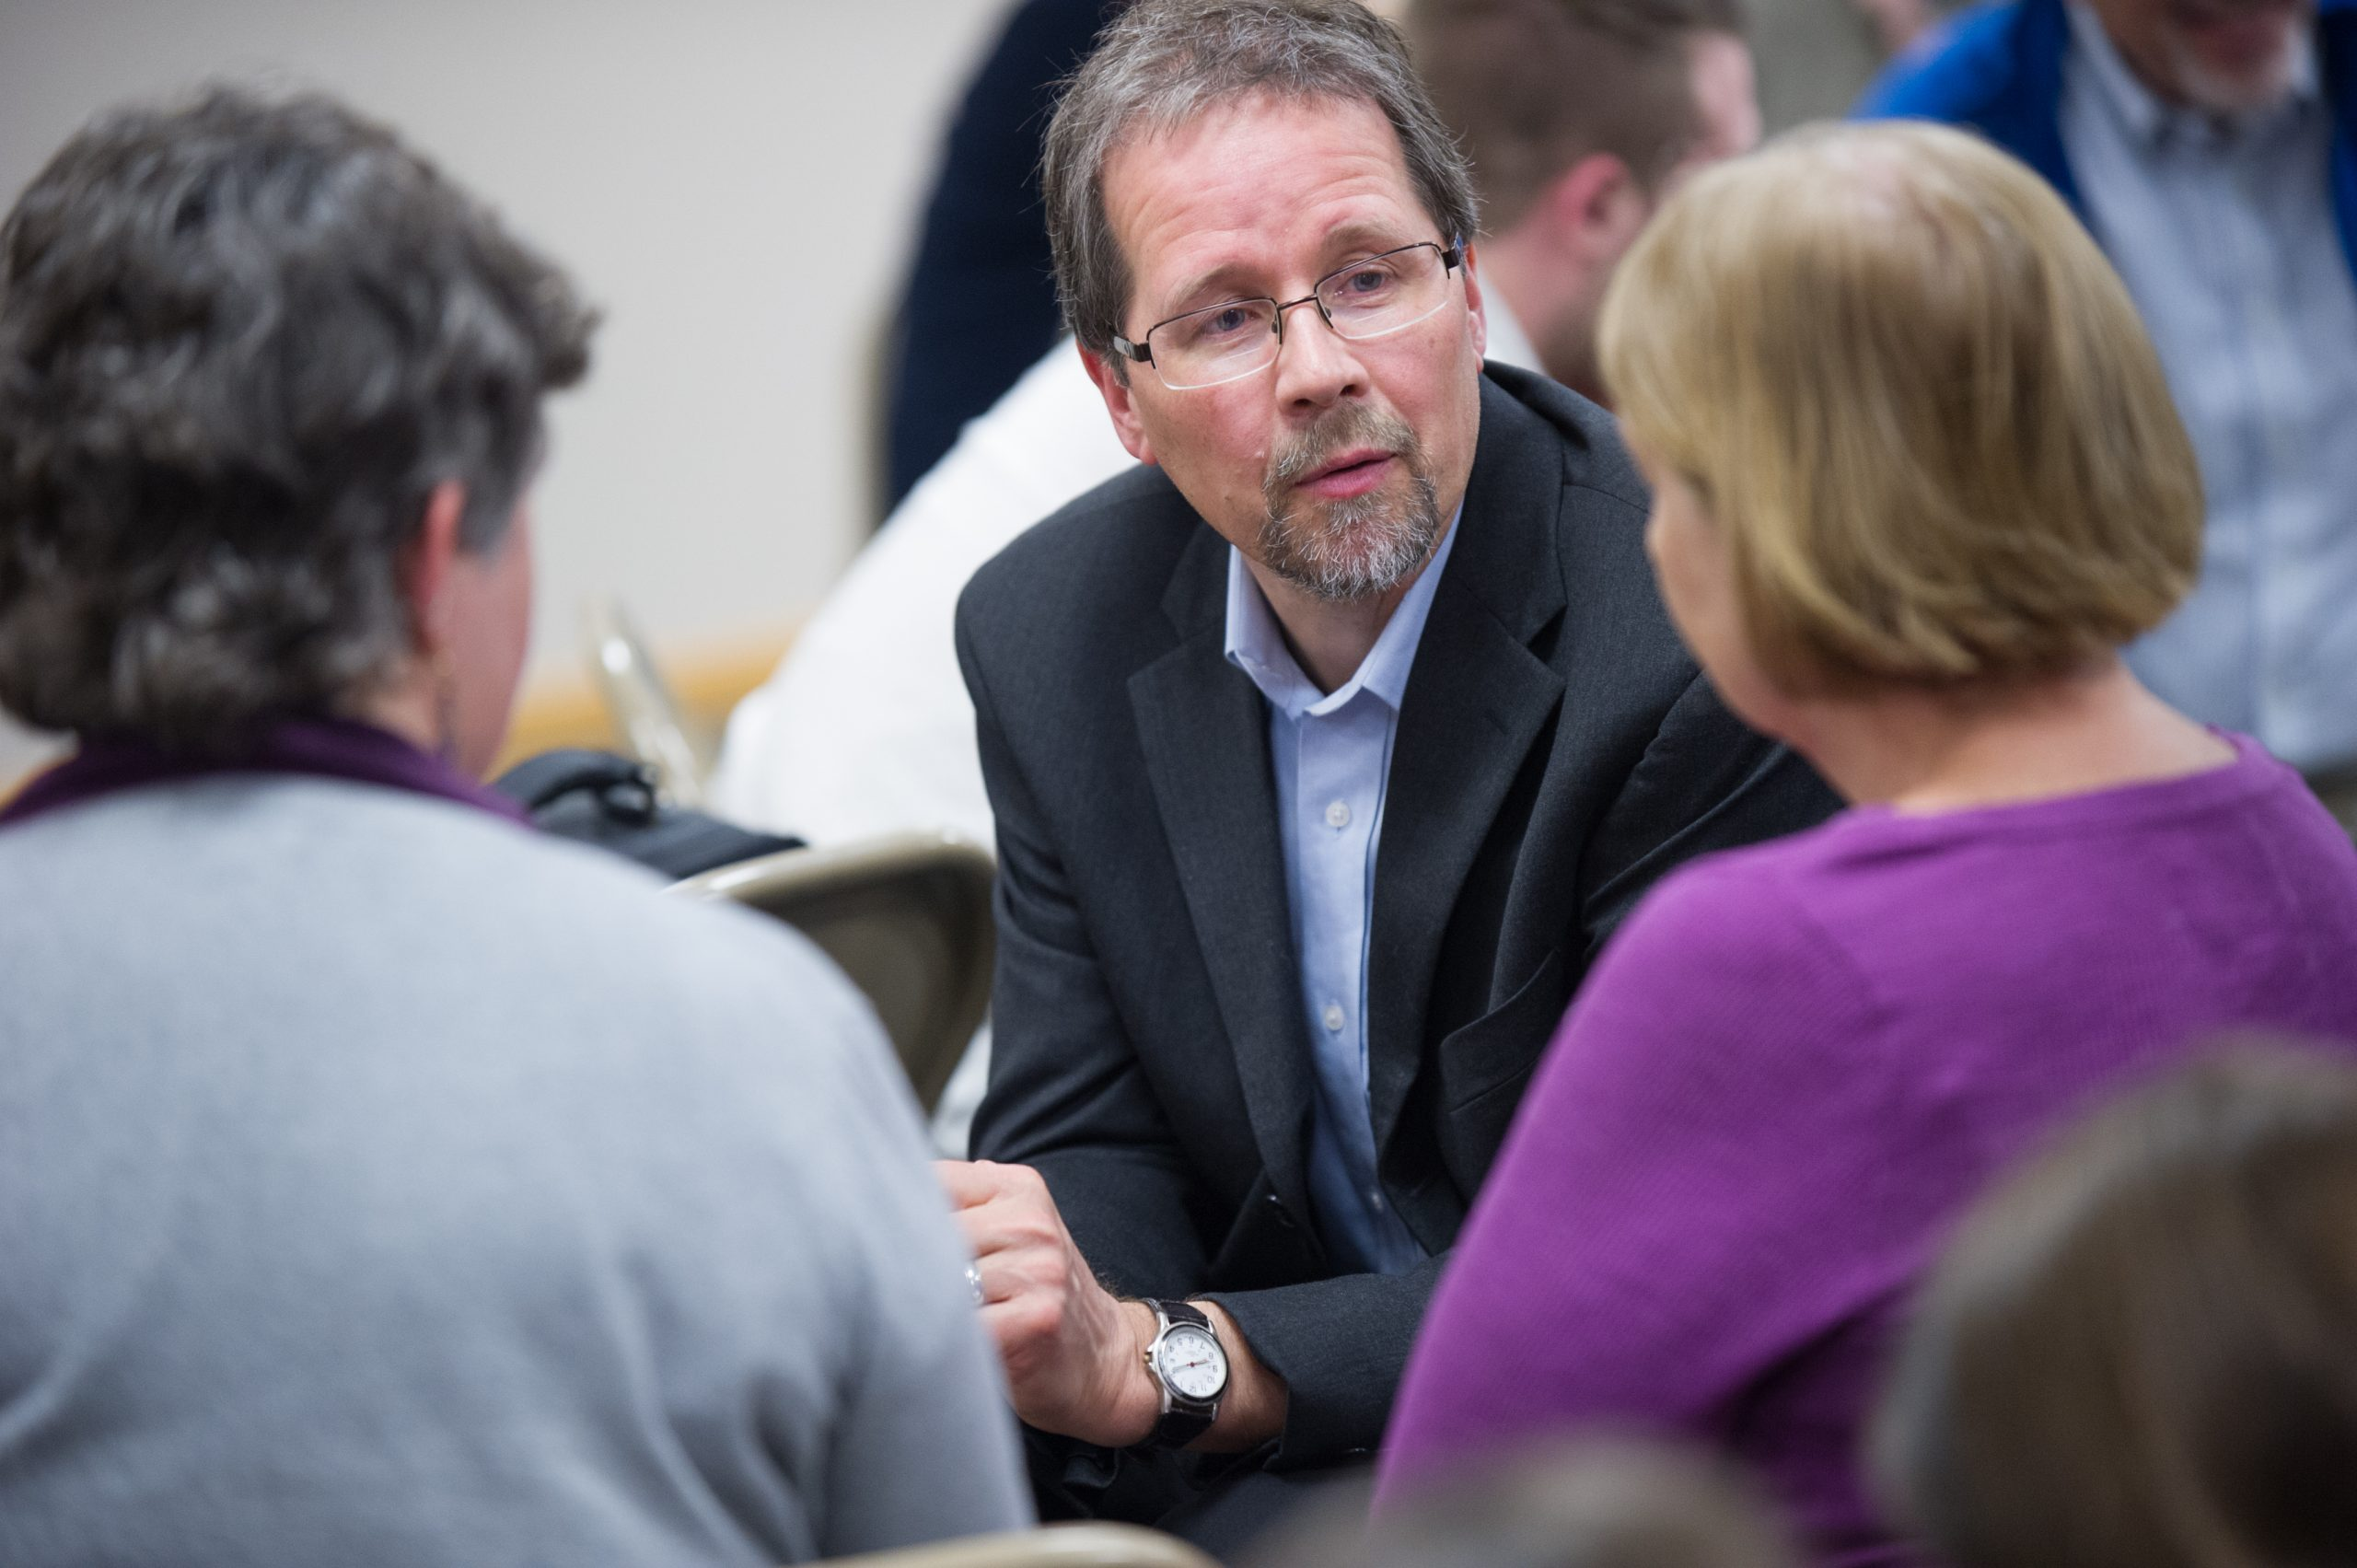 John D. Roth, professor of history at Goshen College, was one of the speakers at an event held April 11 at North Goshen (Ind.) Mennonite Church and sponsored by Mennonite Church USA's Interchurch Relations Reference Group. (Photo by Jason Bryant)